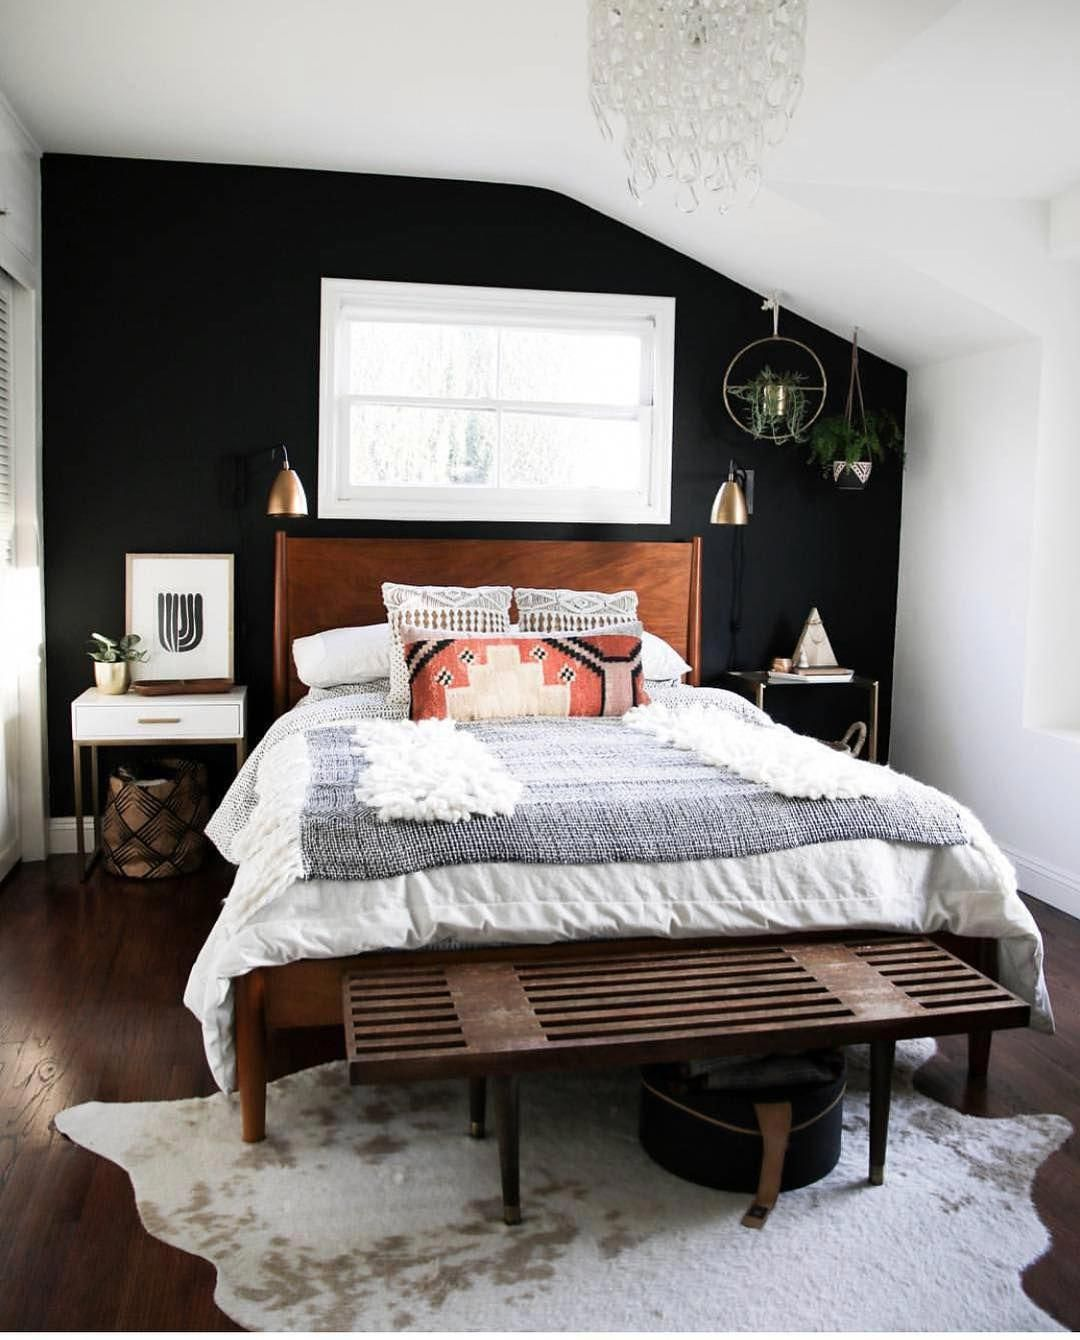 Black Accent Wall Moody Bohi: Can't Decide Which Detail I Like Best